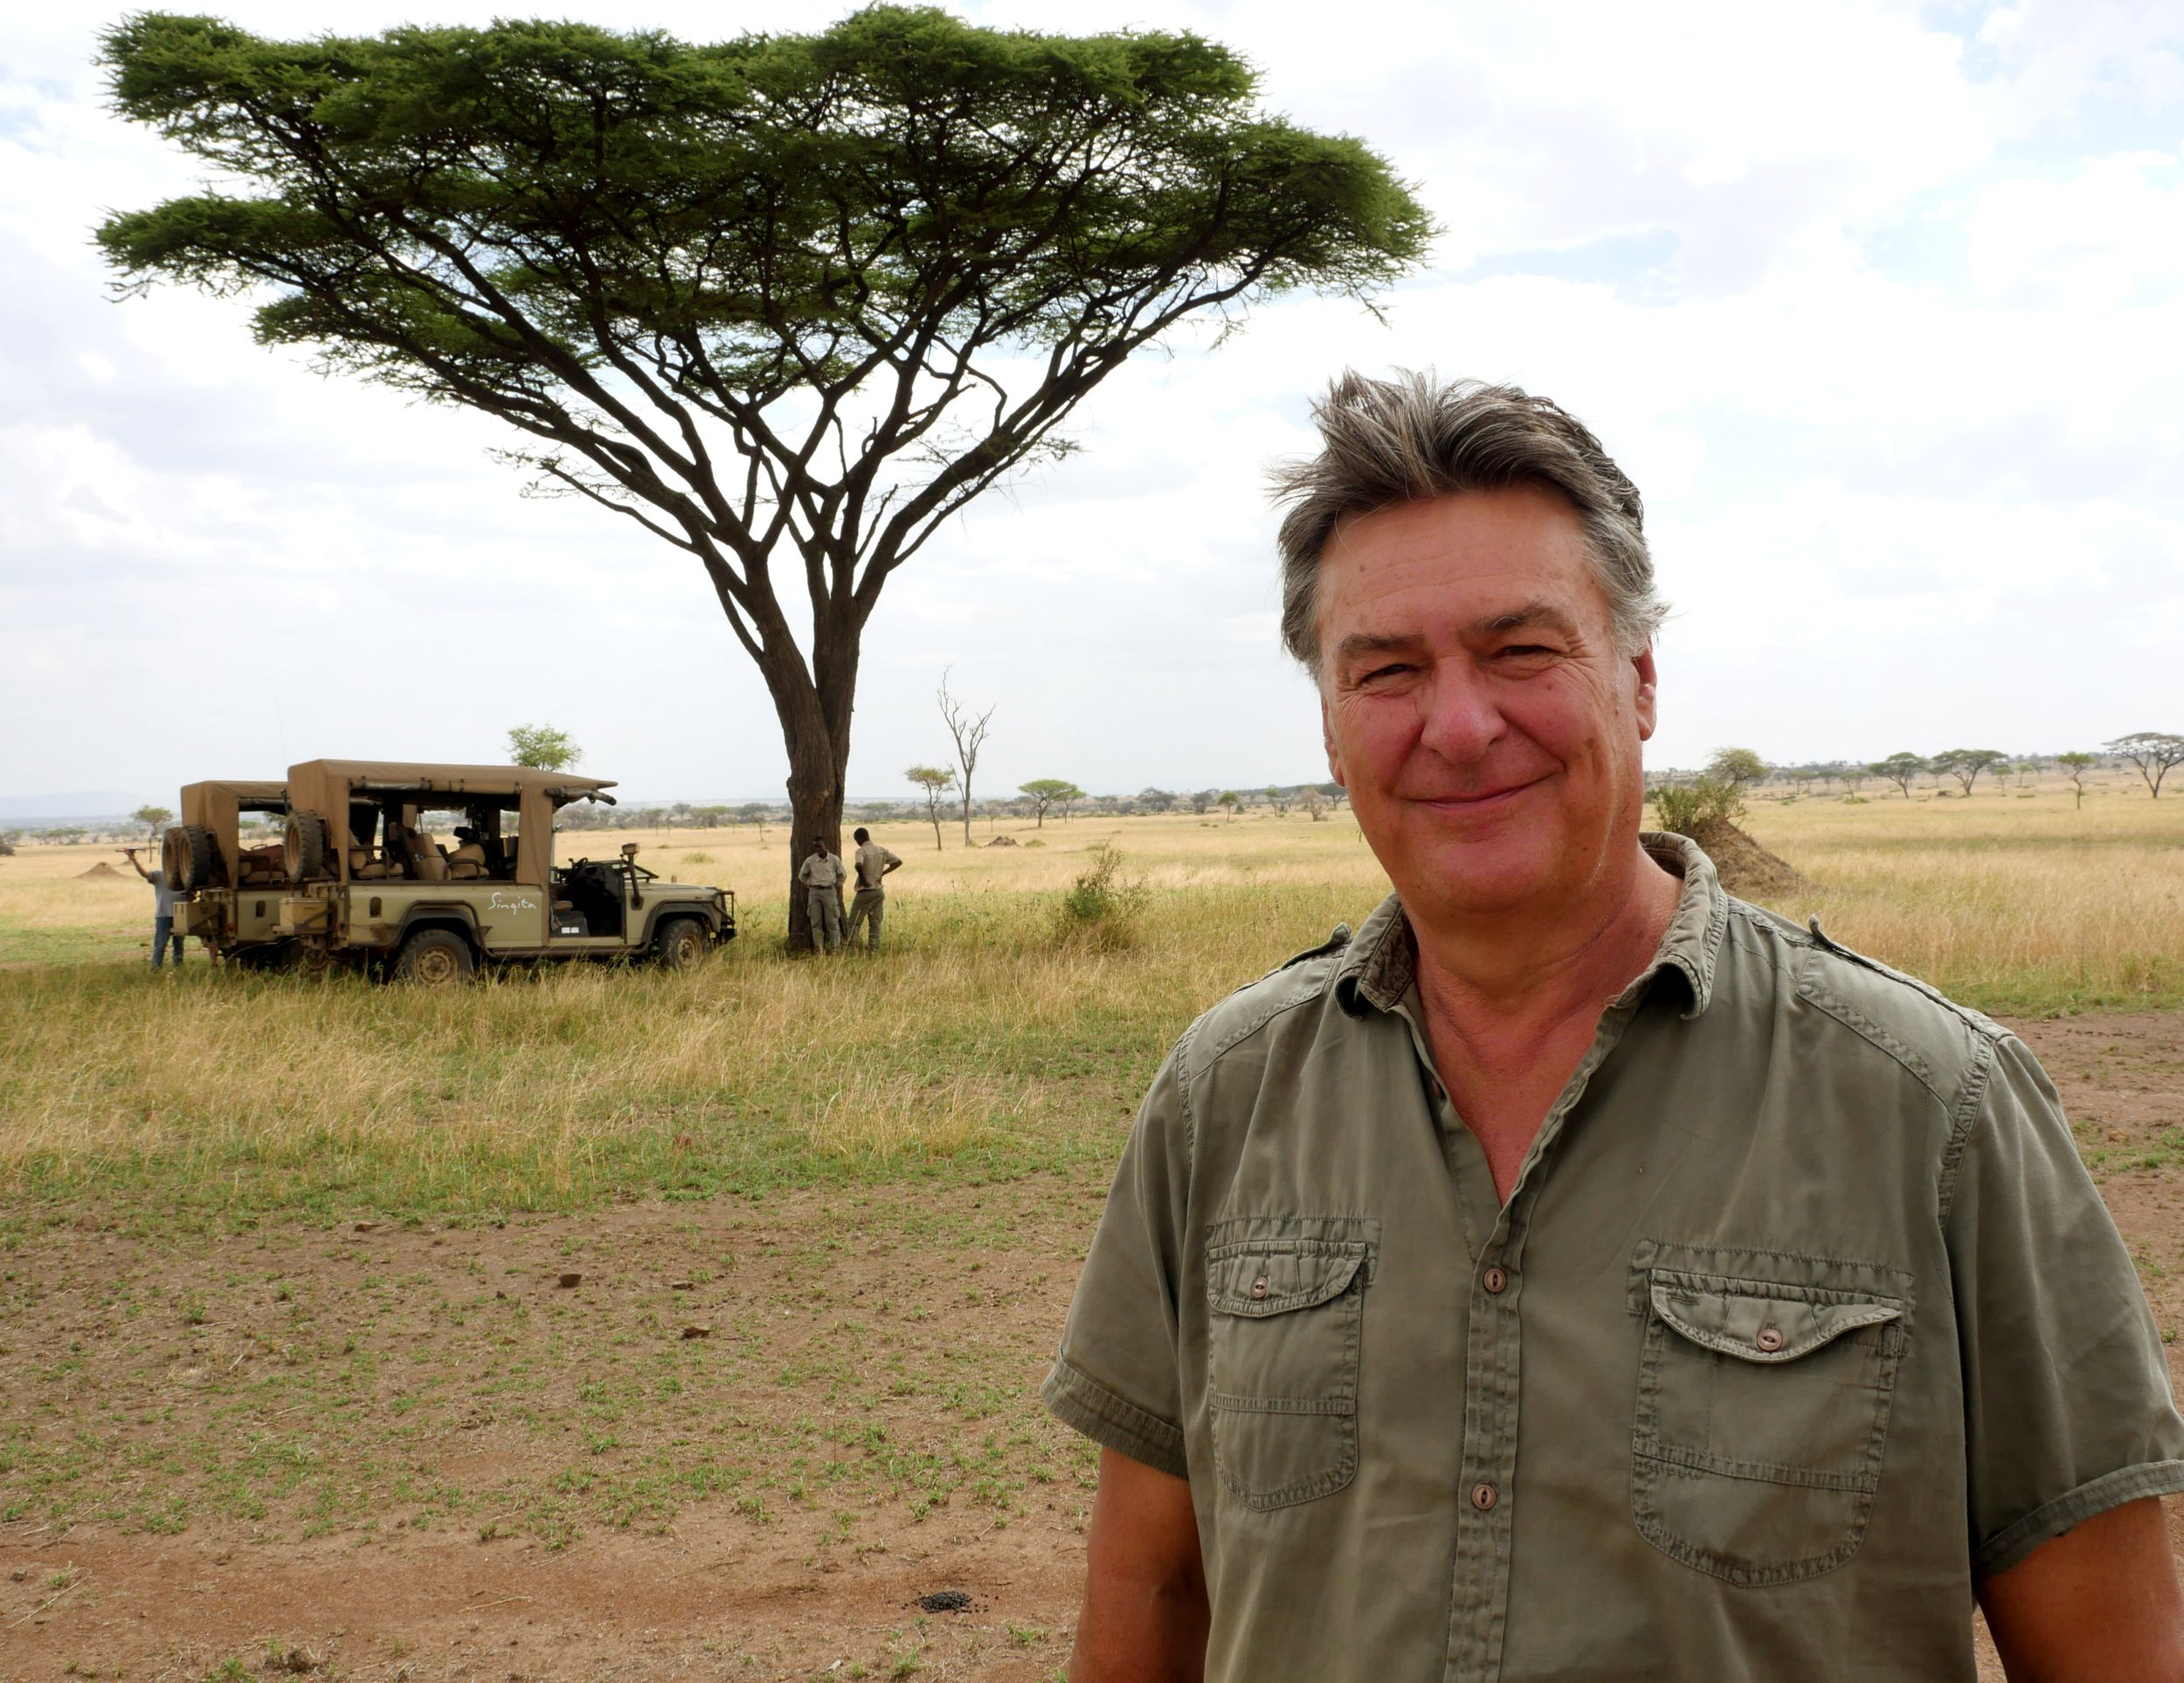 John Downer in the Serengeti (John Downer/BBC/PA)